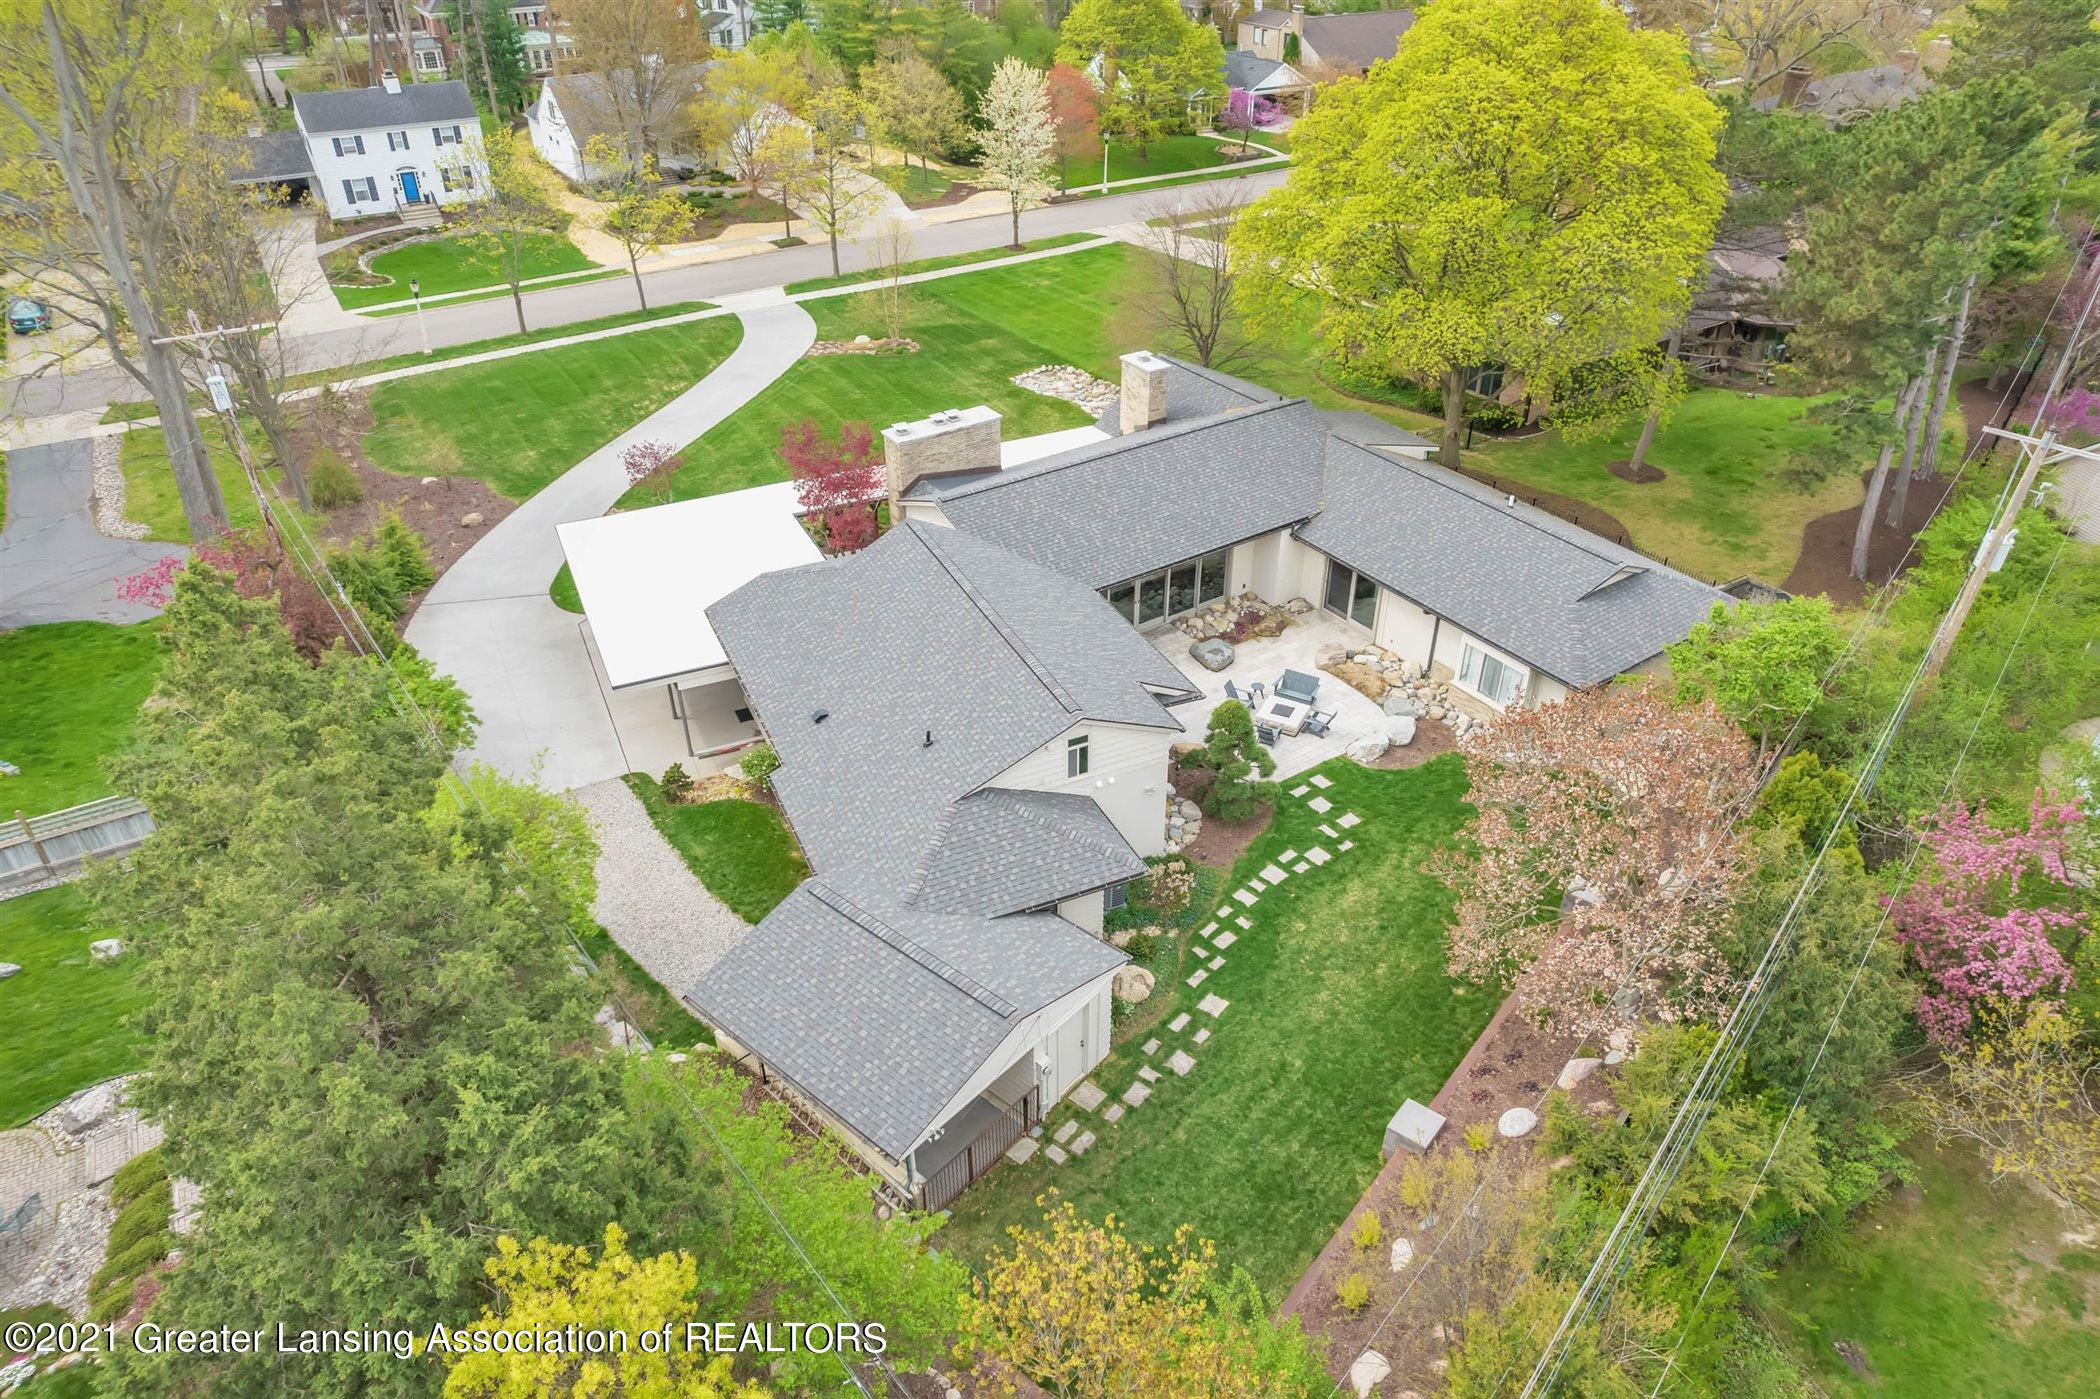 820 Southlawn Ave - EXTERIOR Aerial - 51